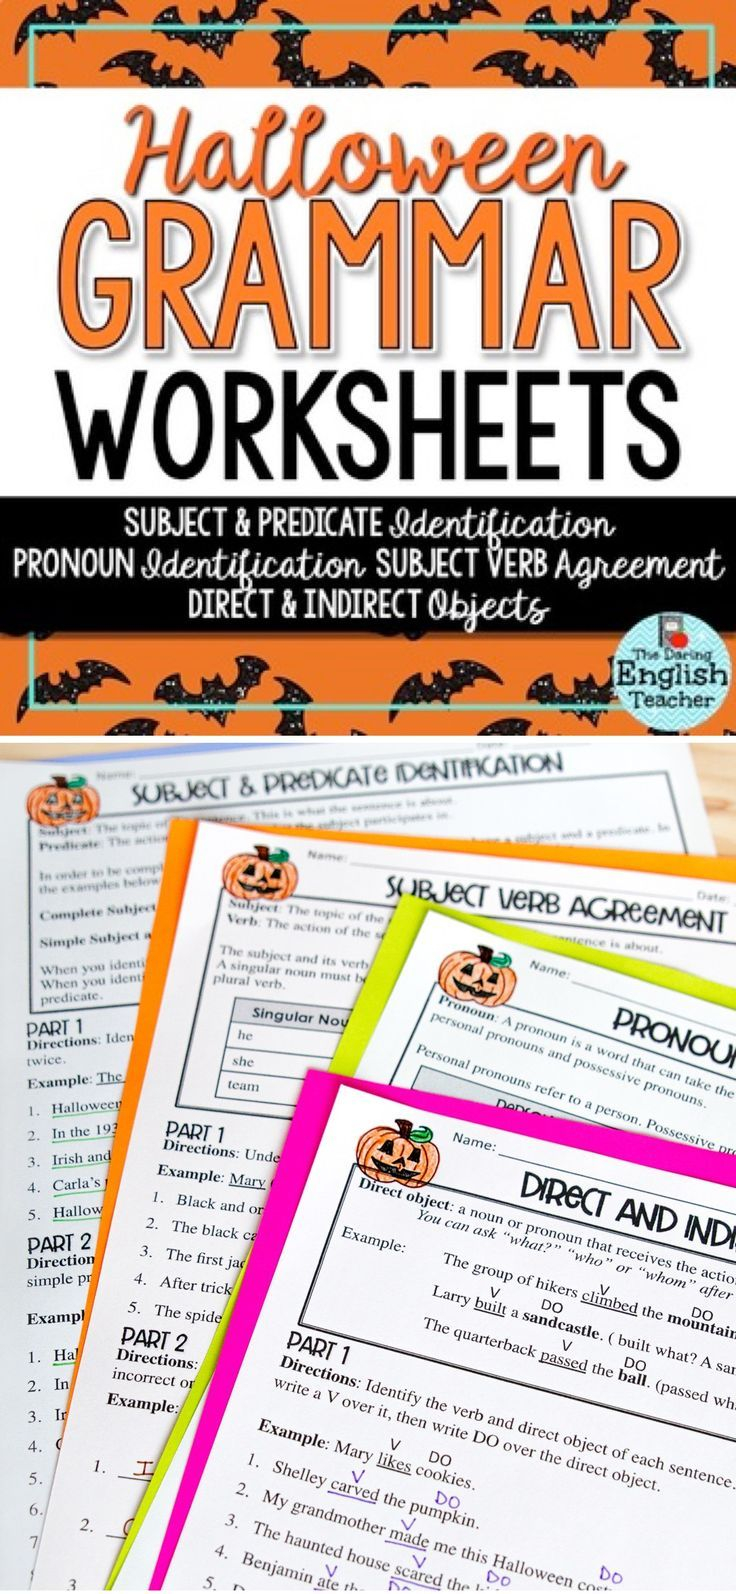 These Halloween-Themed Grammar Worksheets Are Perfect For